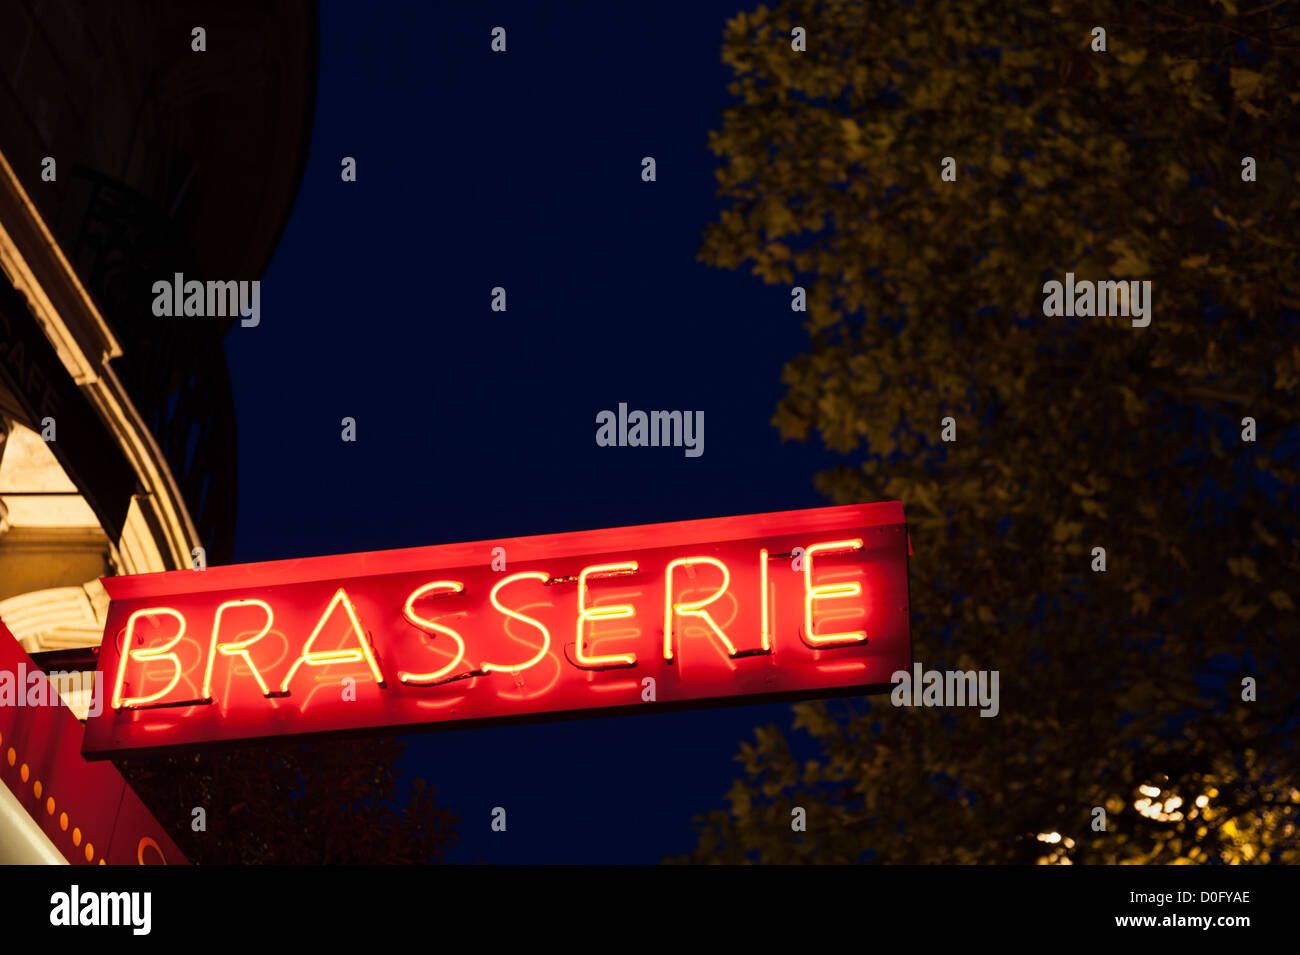 French brasserie sign at night - Paris, France - Stock Image